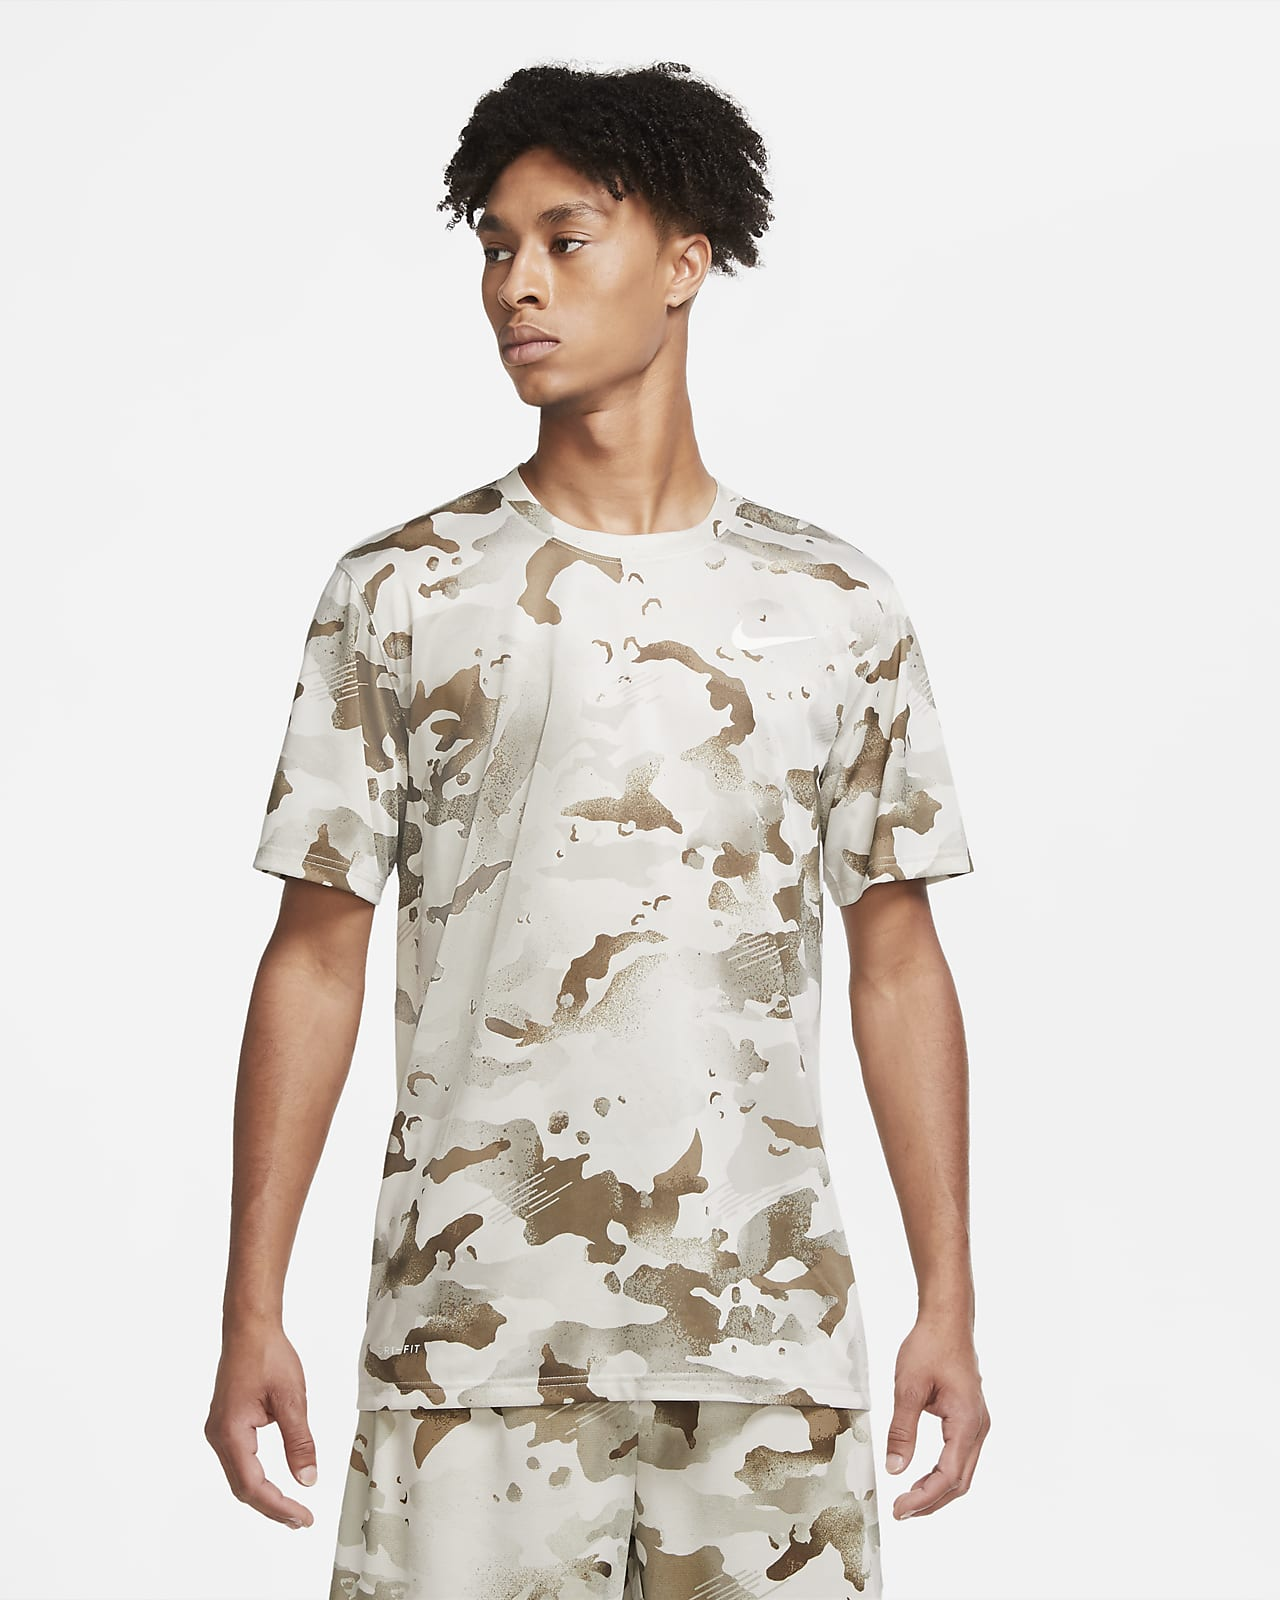 Nike Dri-FIT Trainings-T-Shirt im Camo-Design für Herren